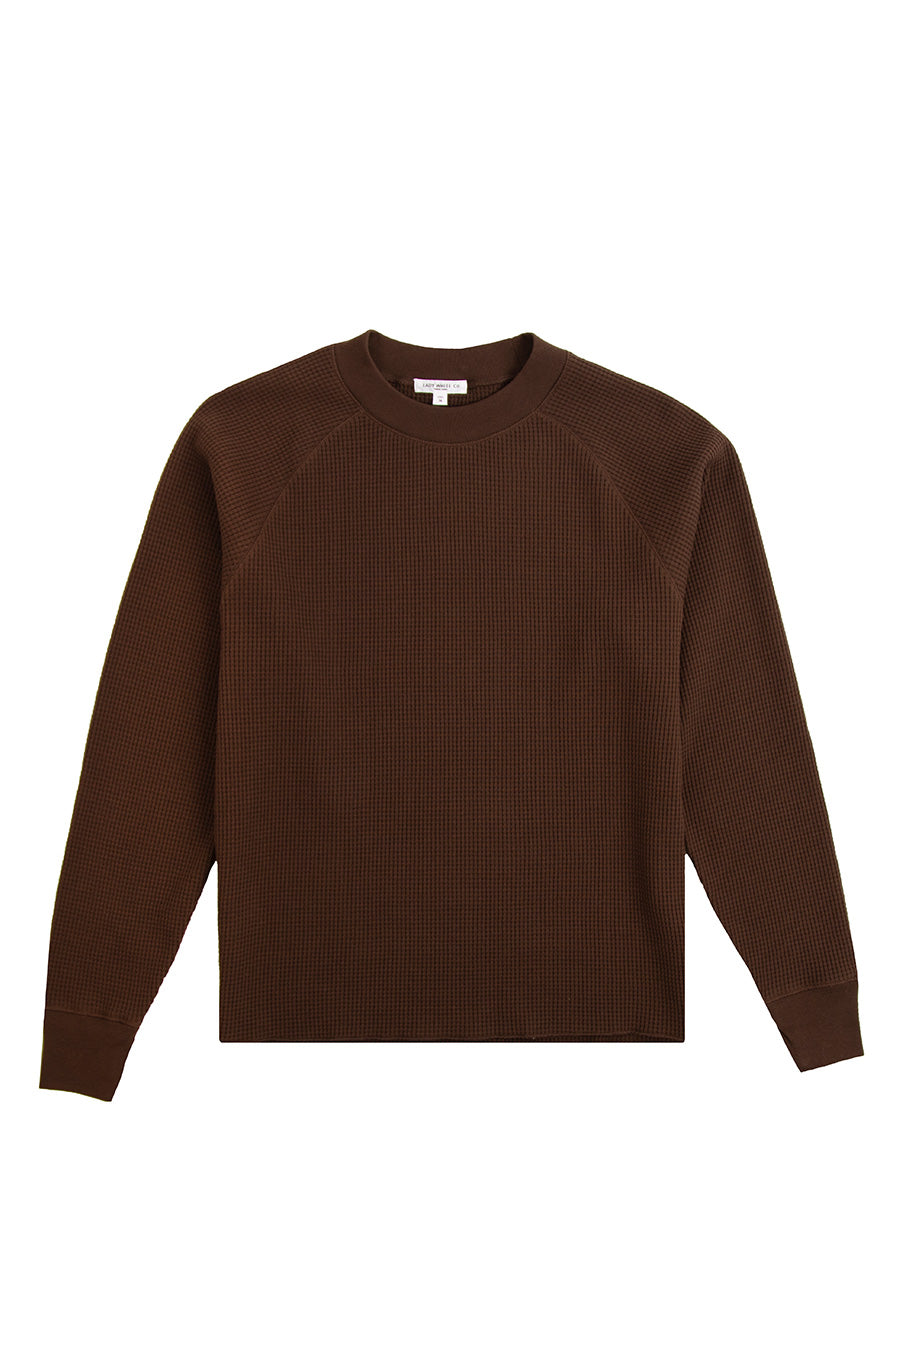 Lady White Co. - Root Brown Cropped Raglan Thermal | 1032 SPACE